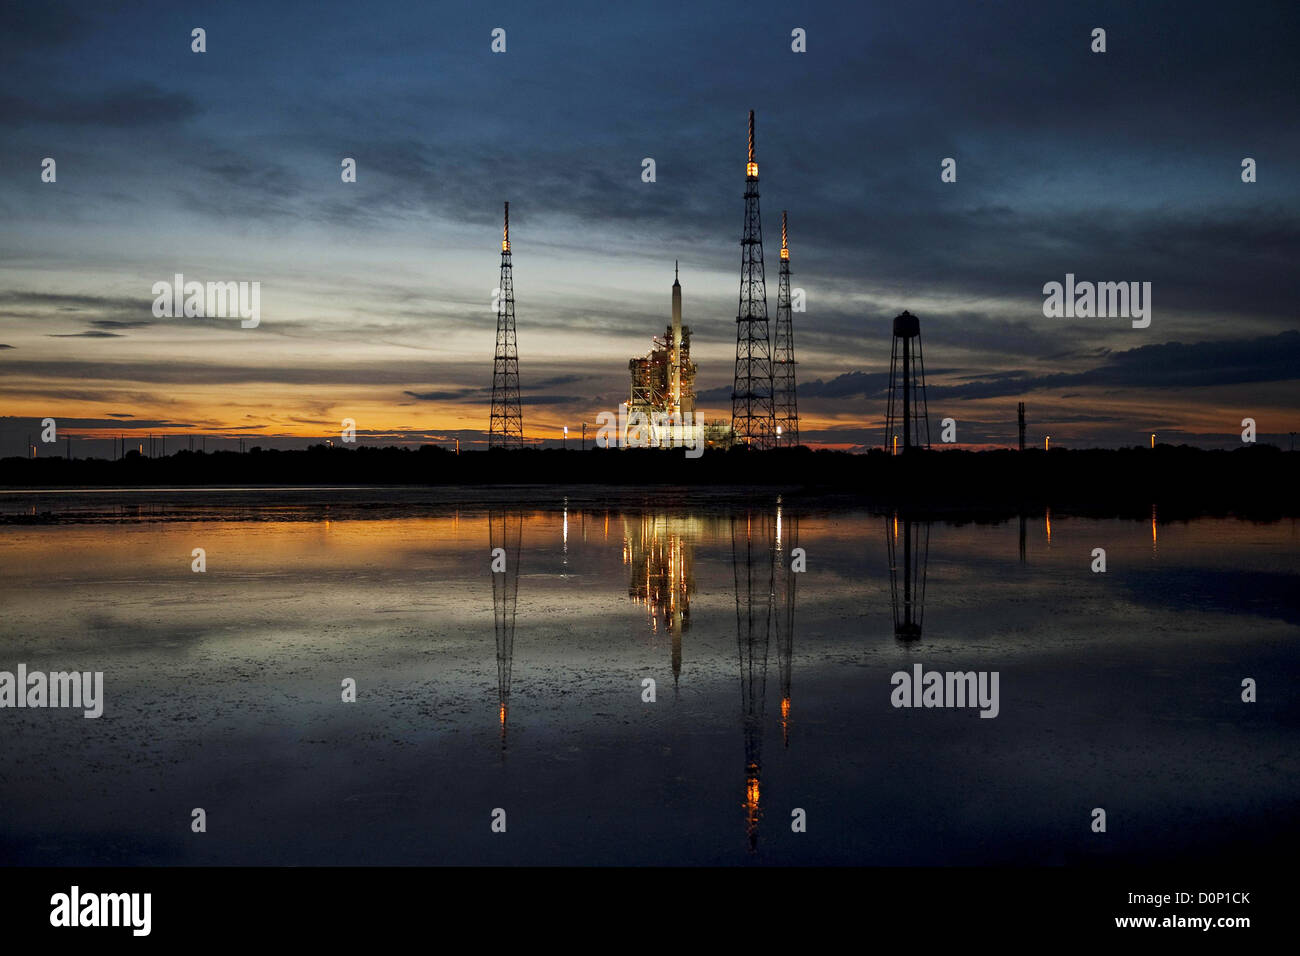 Ares I-X on the Launch Pad - Stock Image